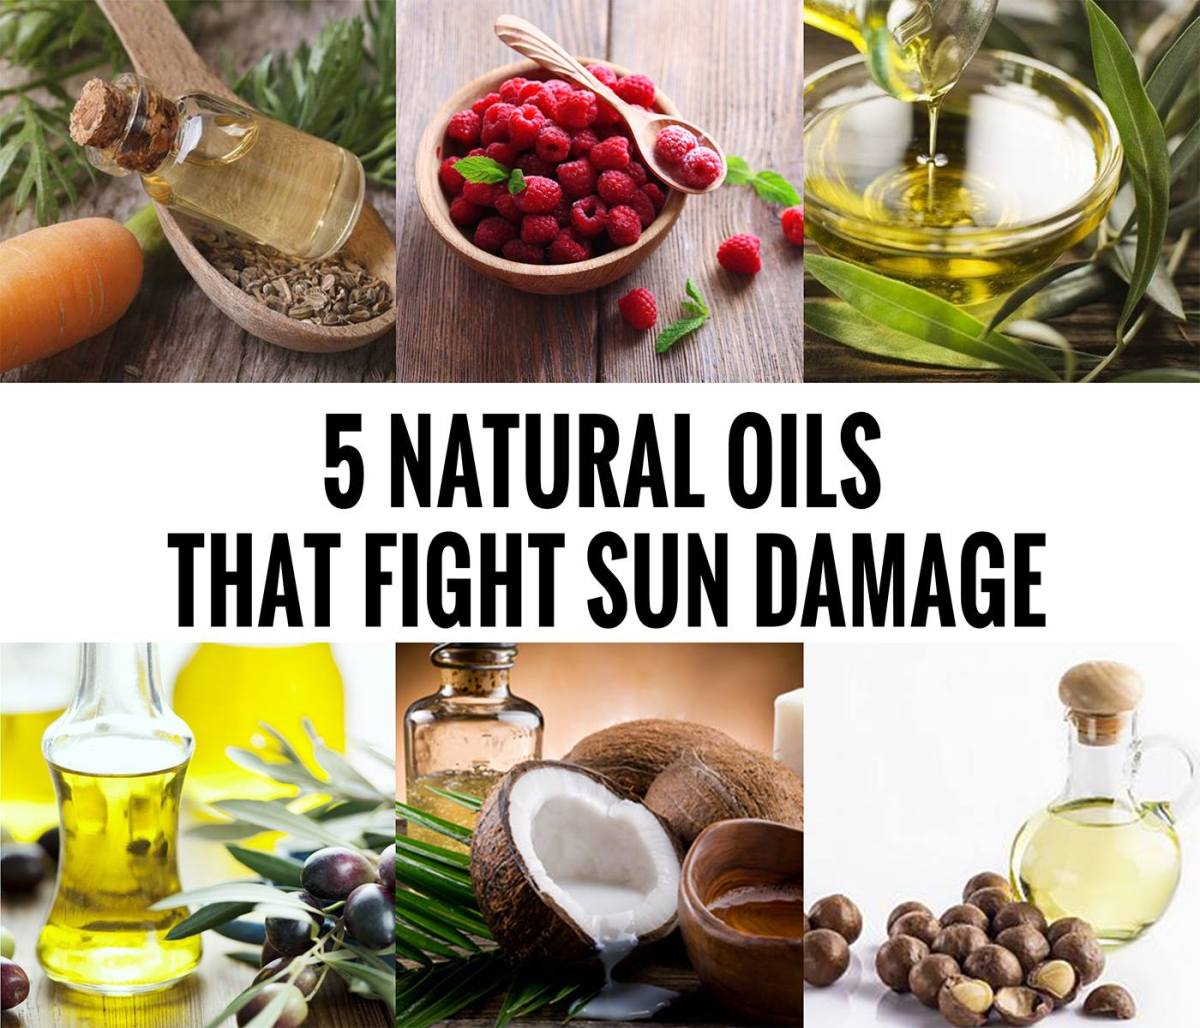 5 Natural Oils that fight sun damage